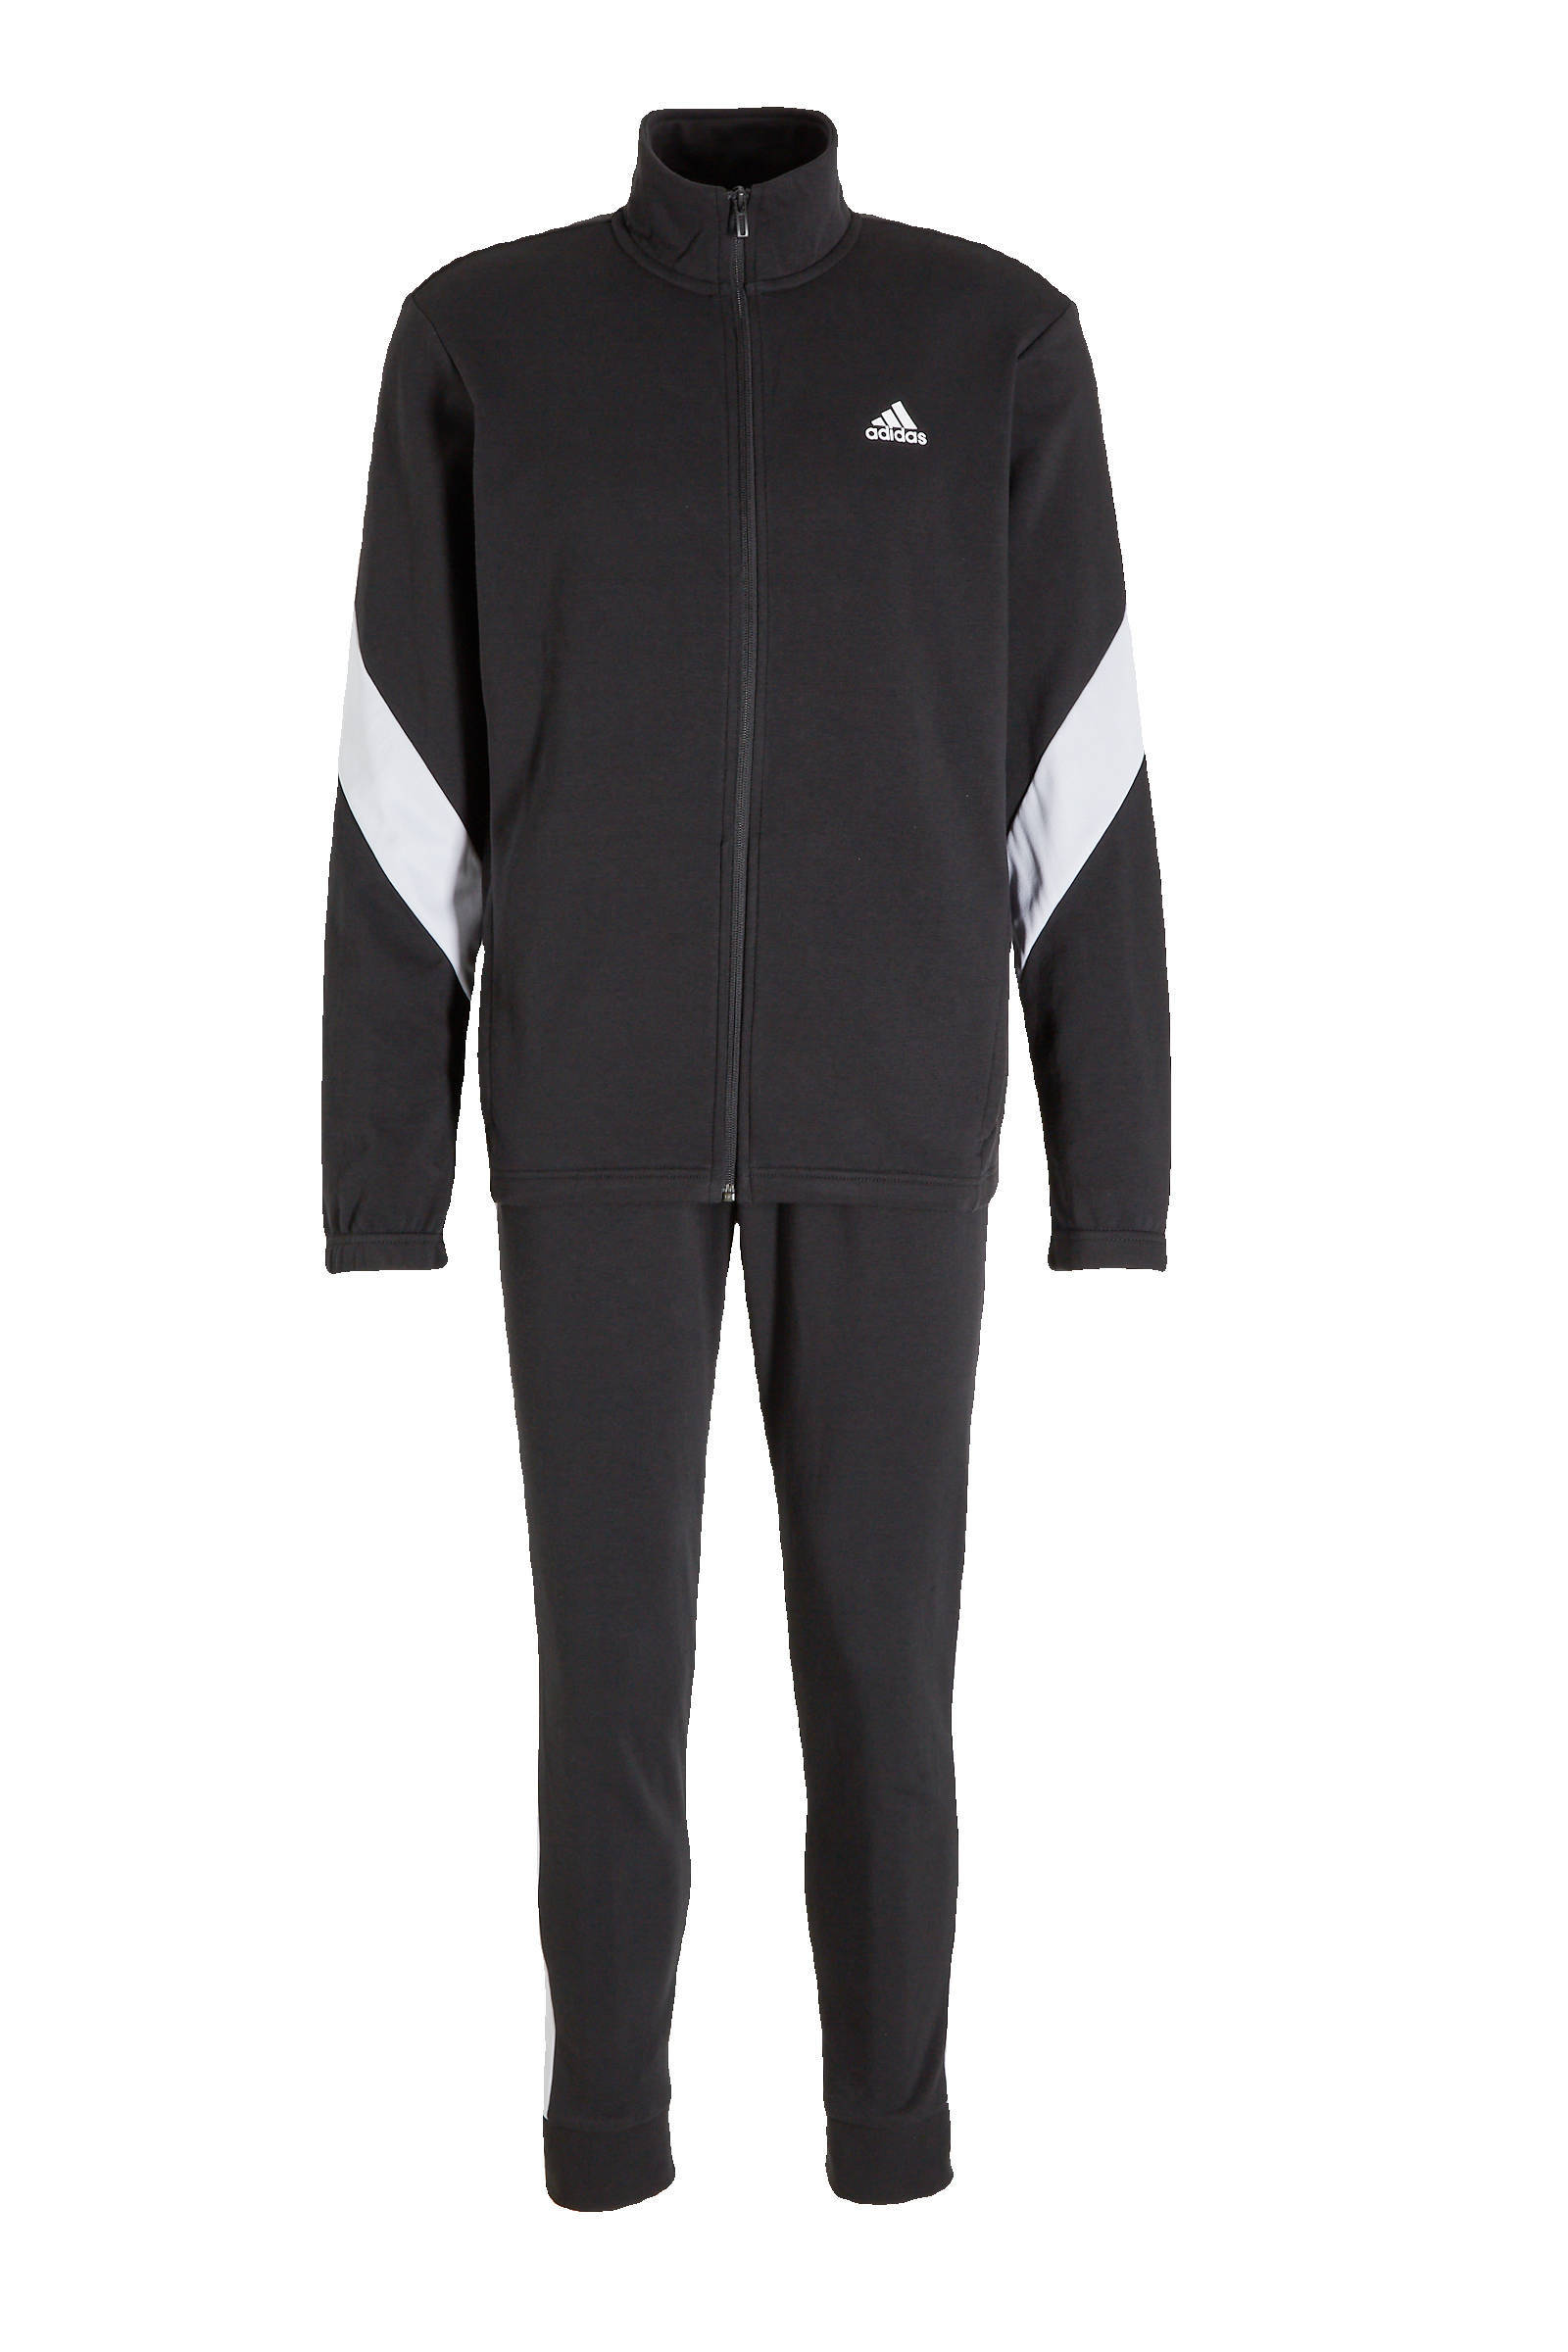 adidas performance trainingspak zwart/wit